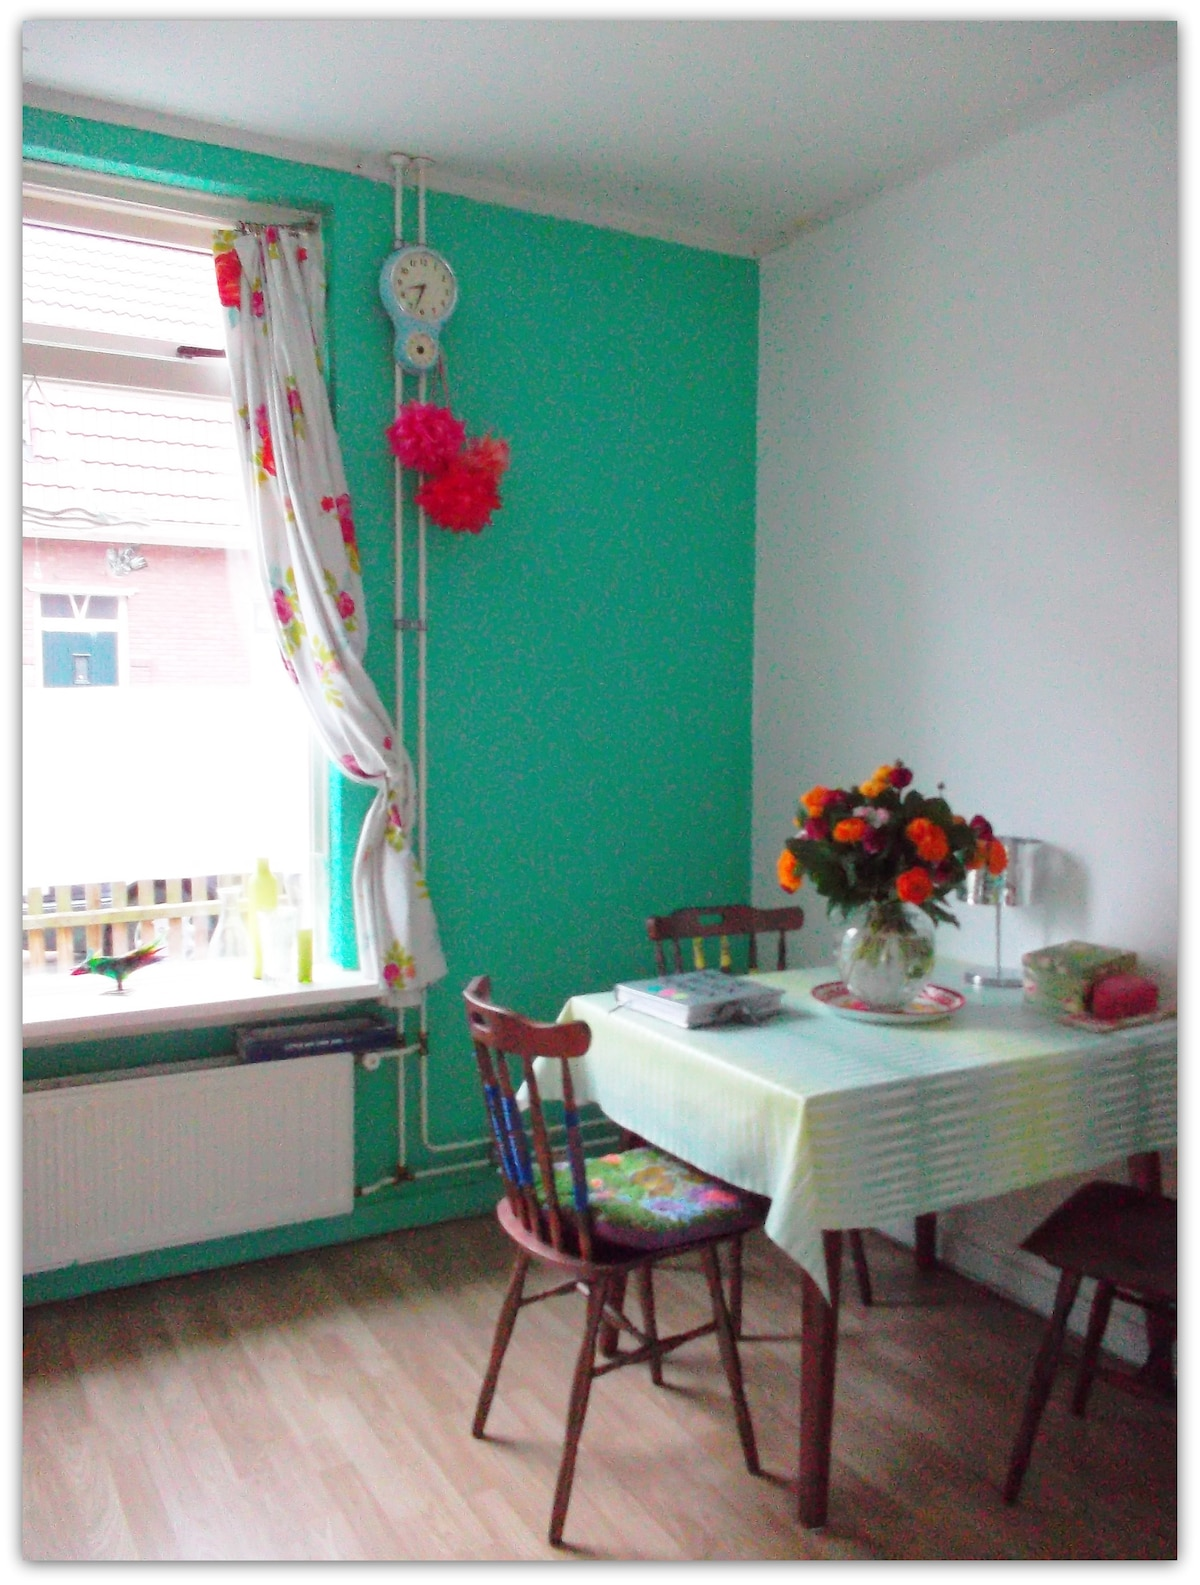 Guestroom in my new colourful house